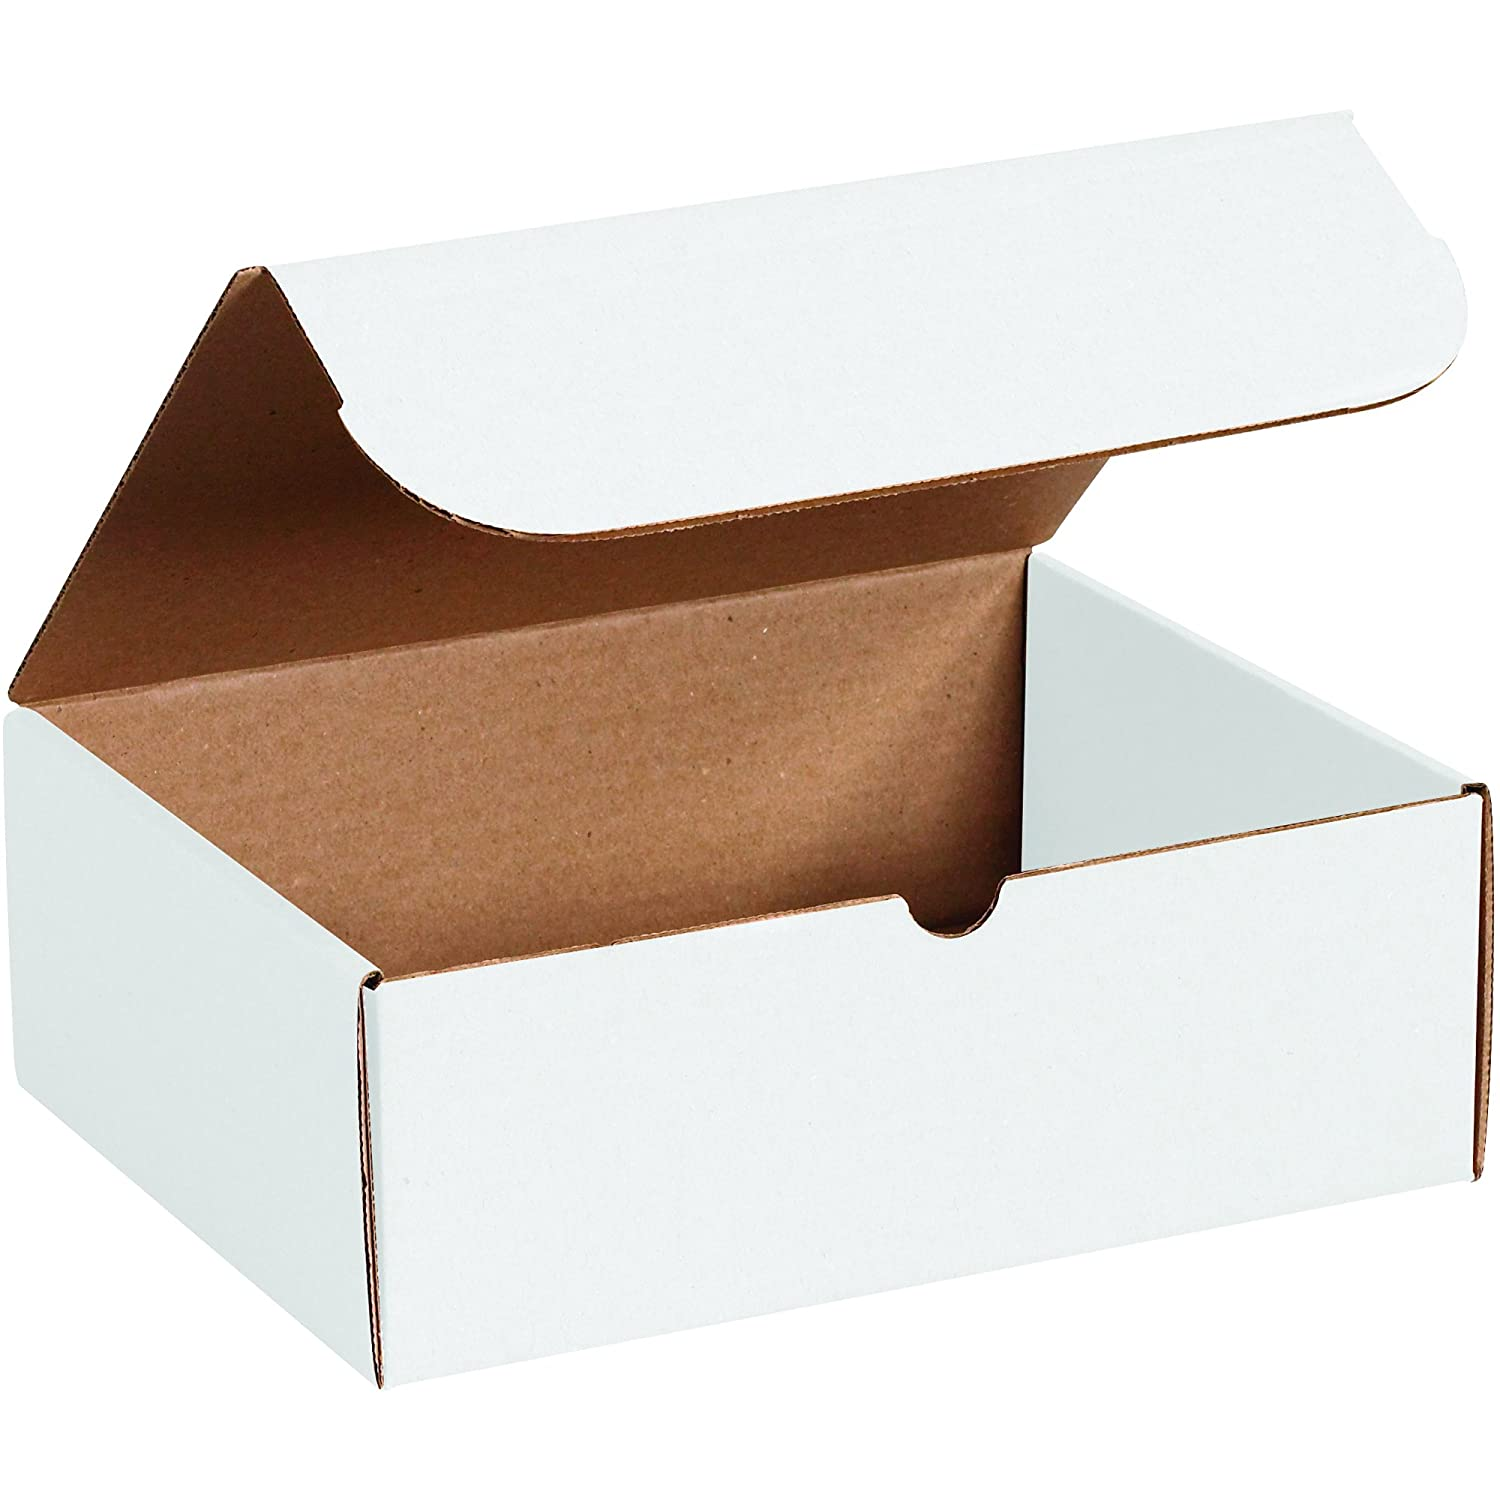 Boxes Fast BFM1184 Animer and price revision Corrugated New Orleans Mall Cardboard Literature 1 11 Mailers